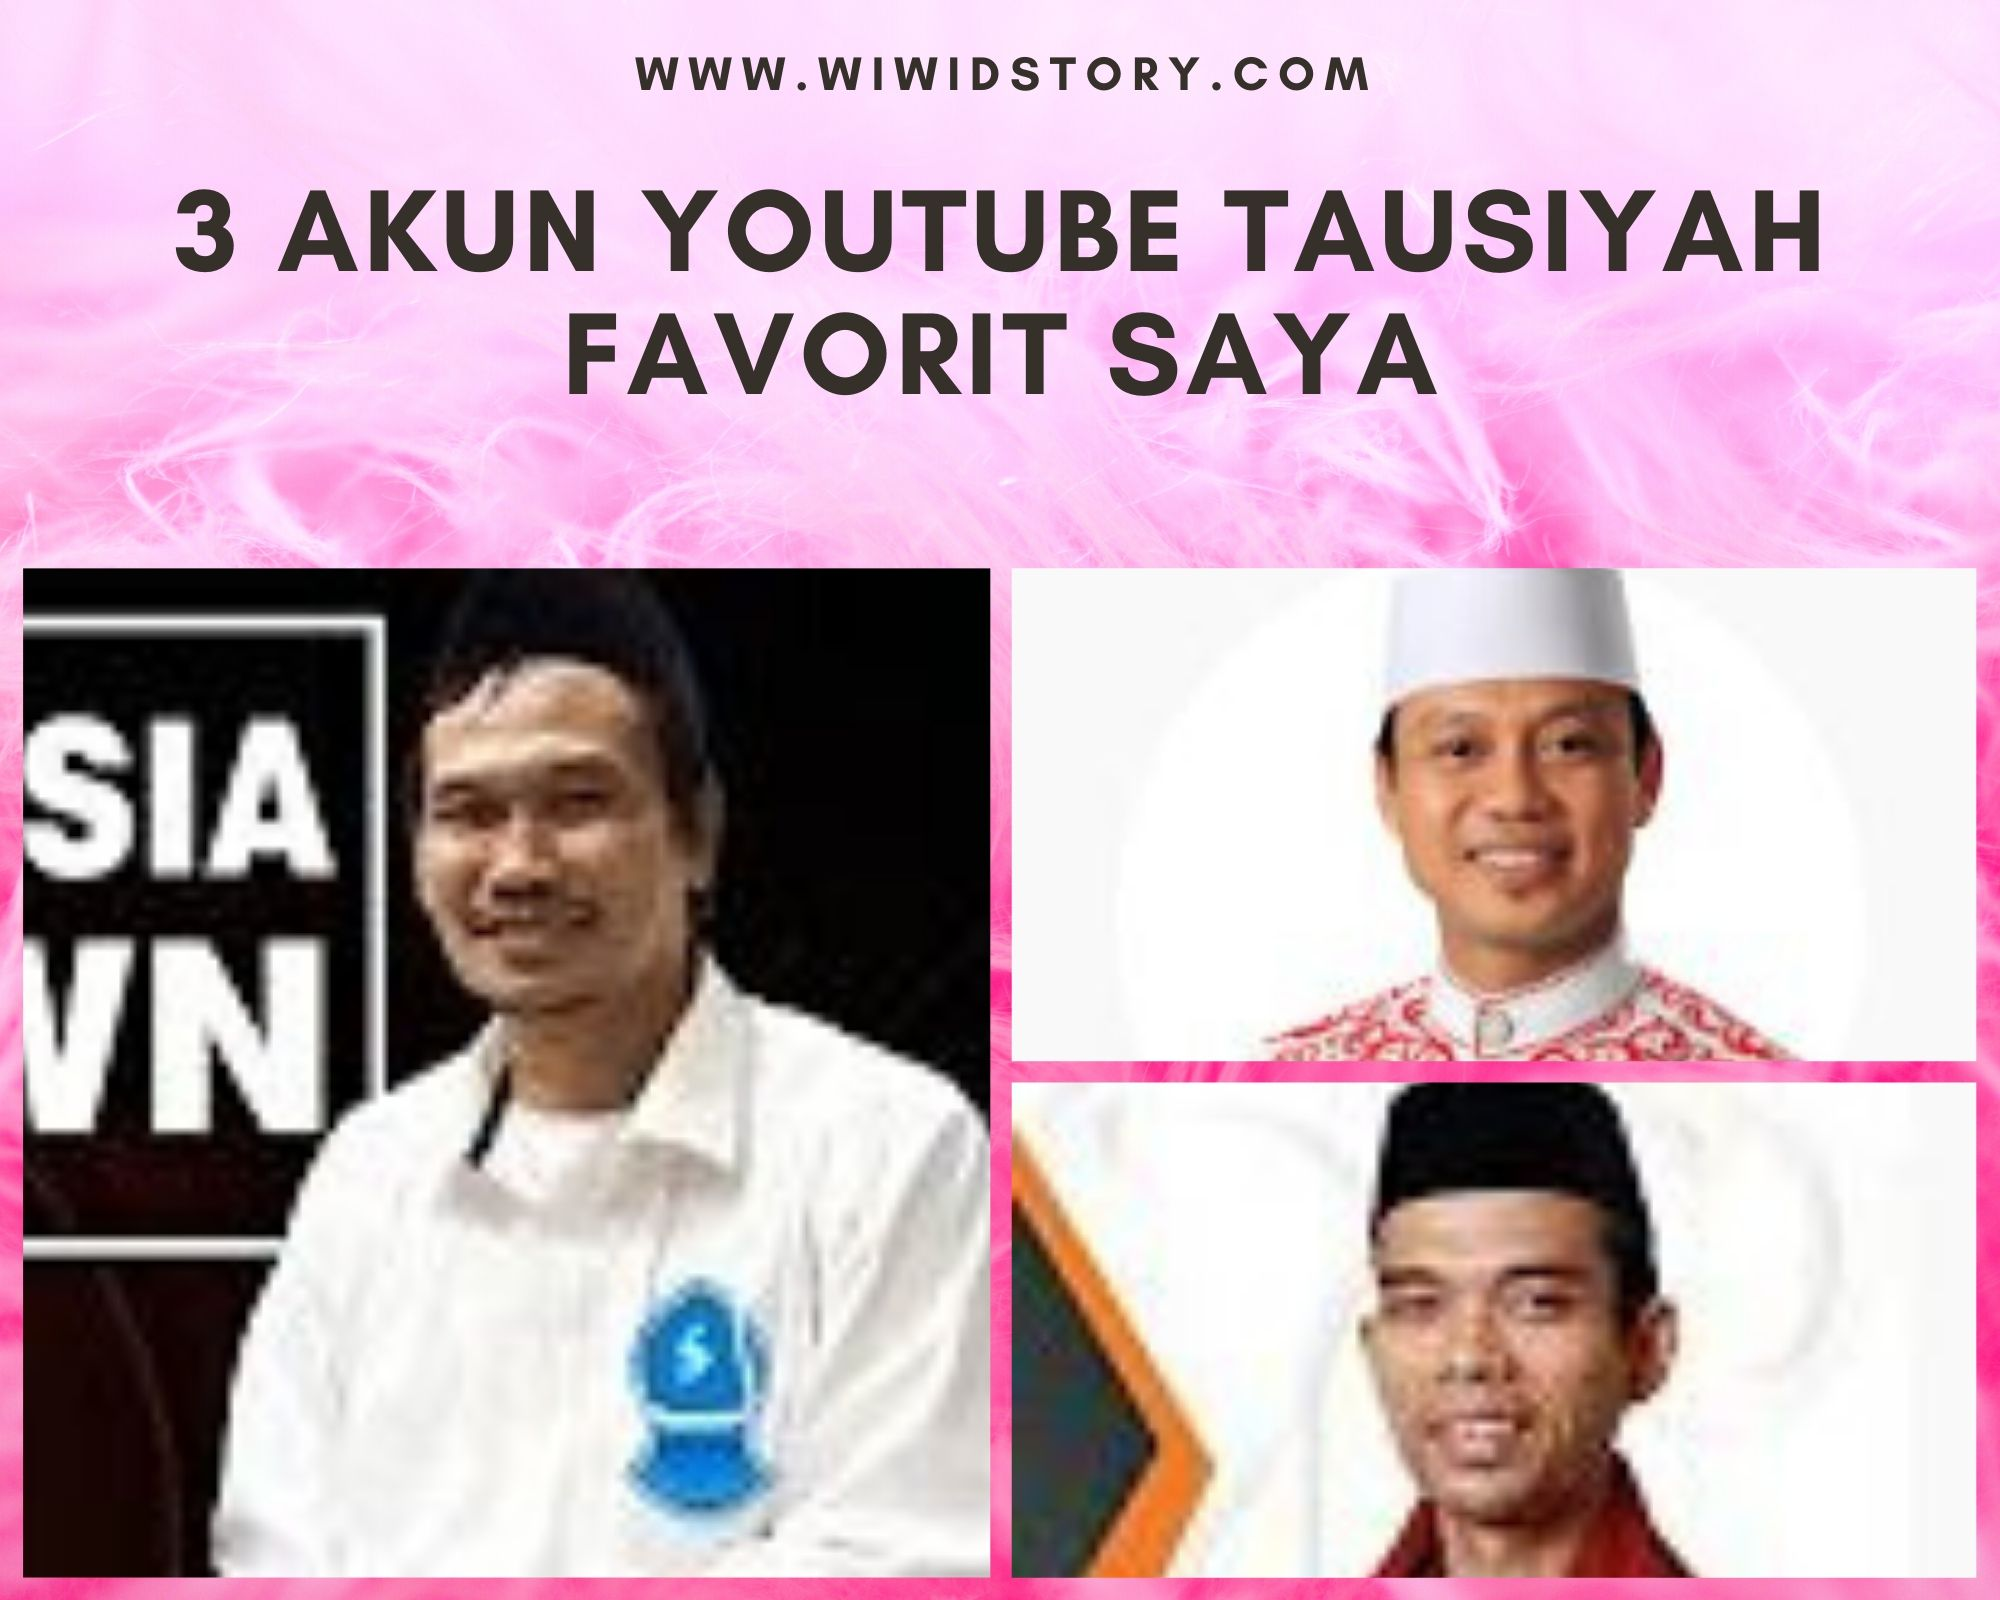 akun yotube tausiyah favorit